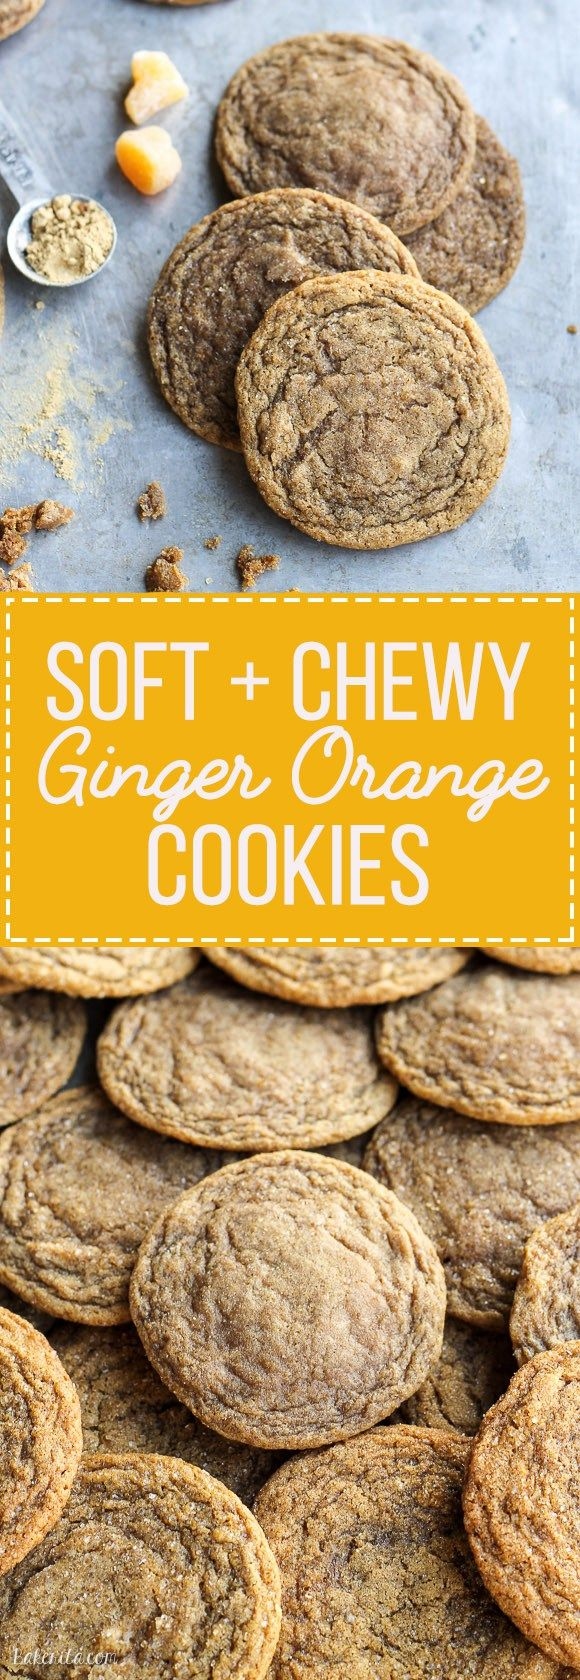 These Chewy Ginger Orange Cookies are a classic soft and chewy ginger cookie with a hint of orange zest. These flavorful cookies stay soft for up to a week!